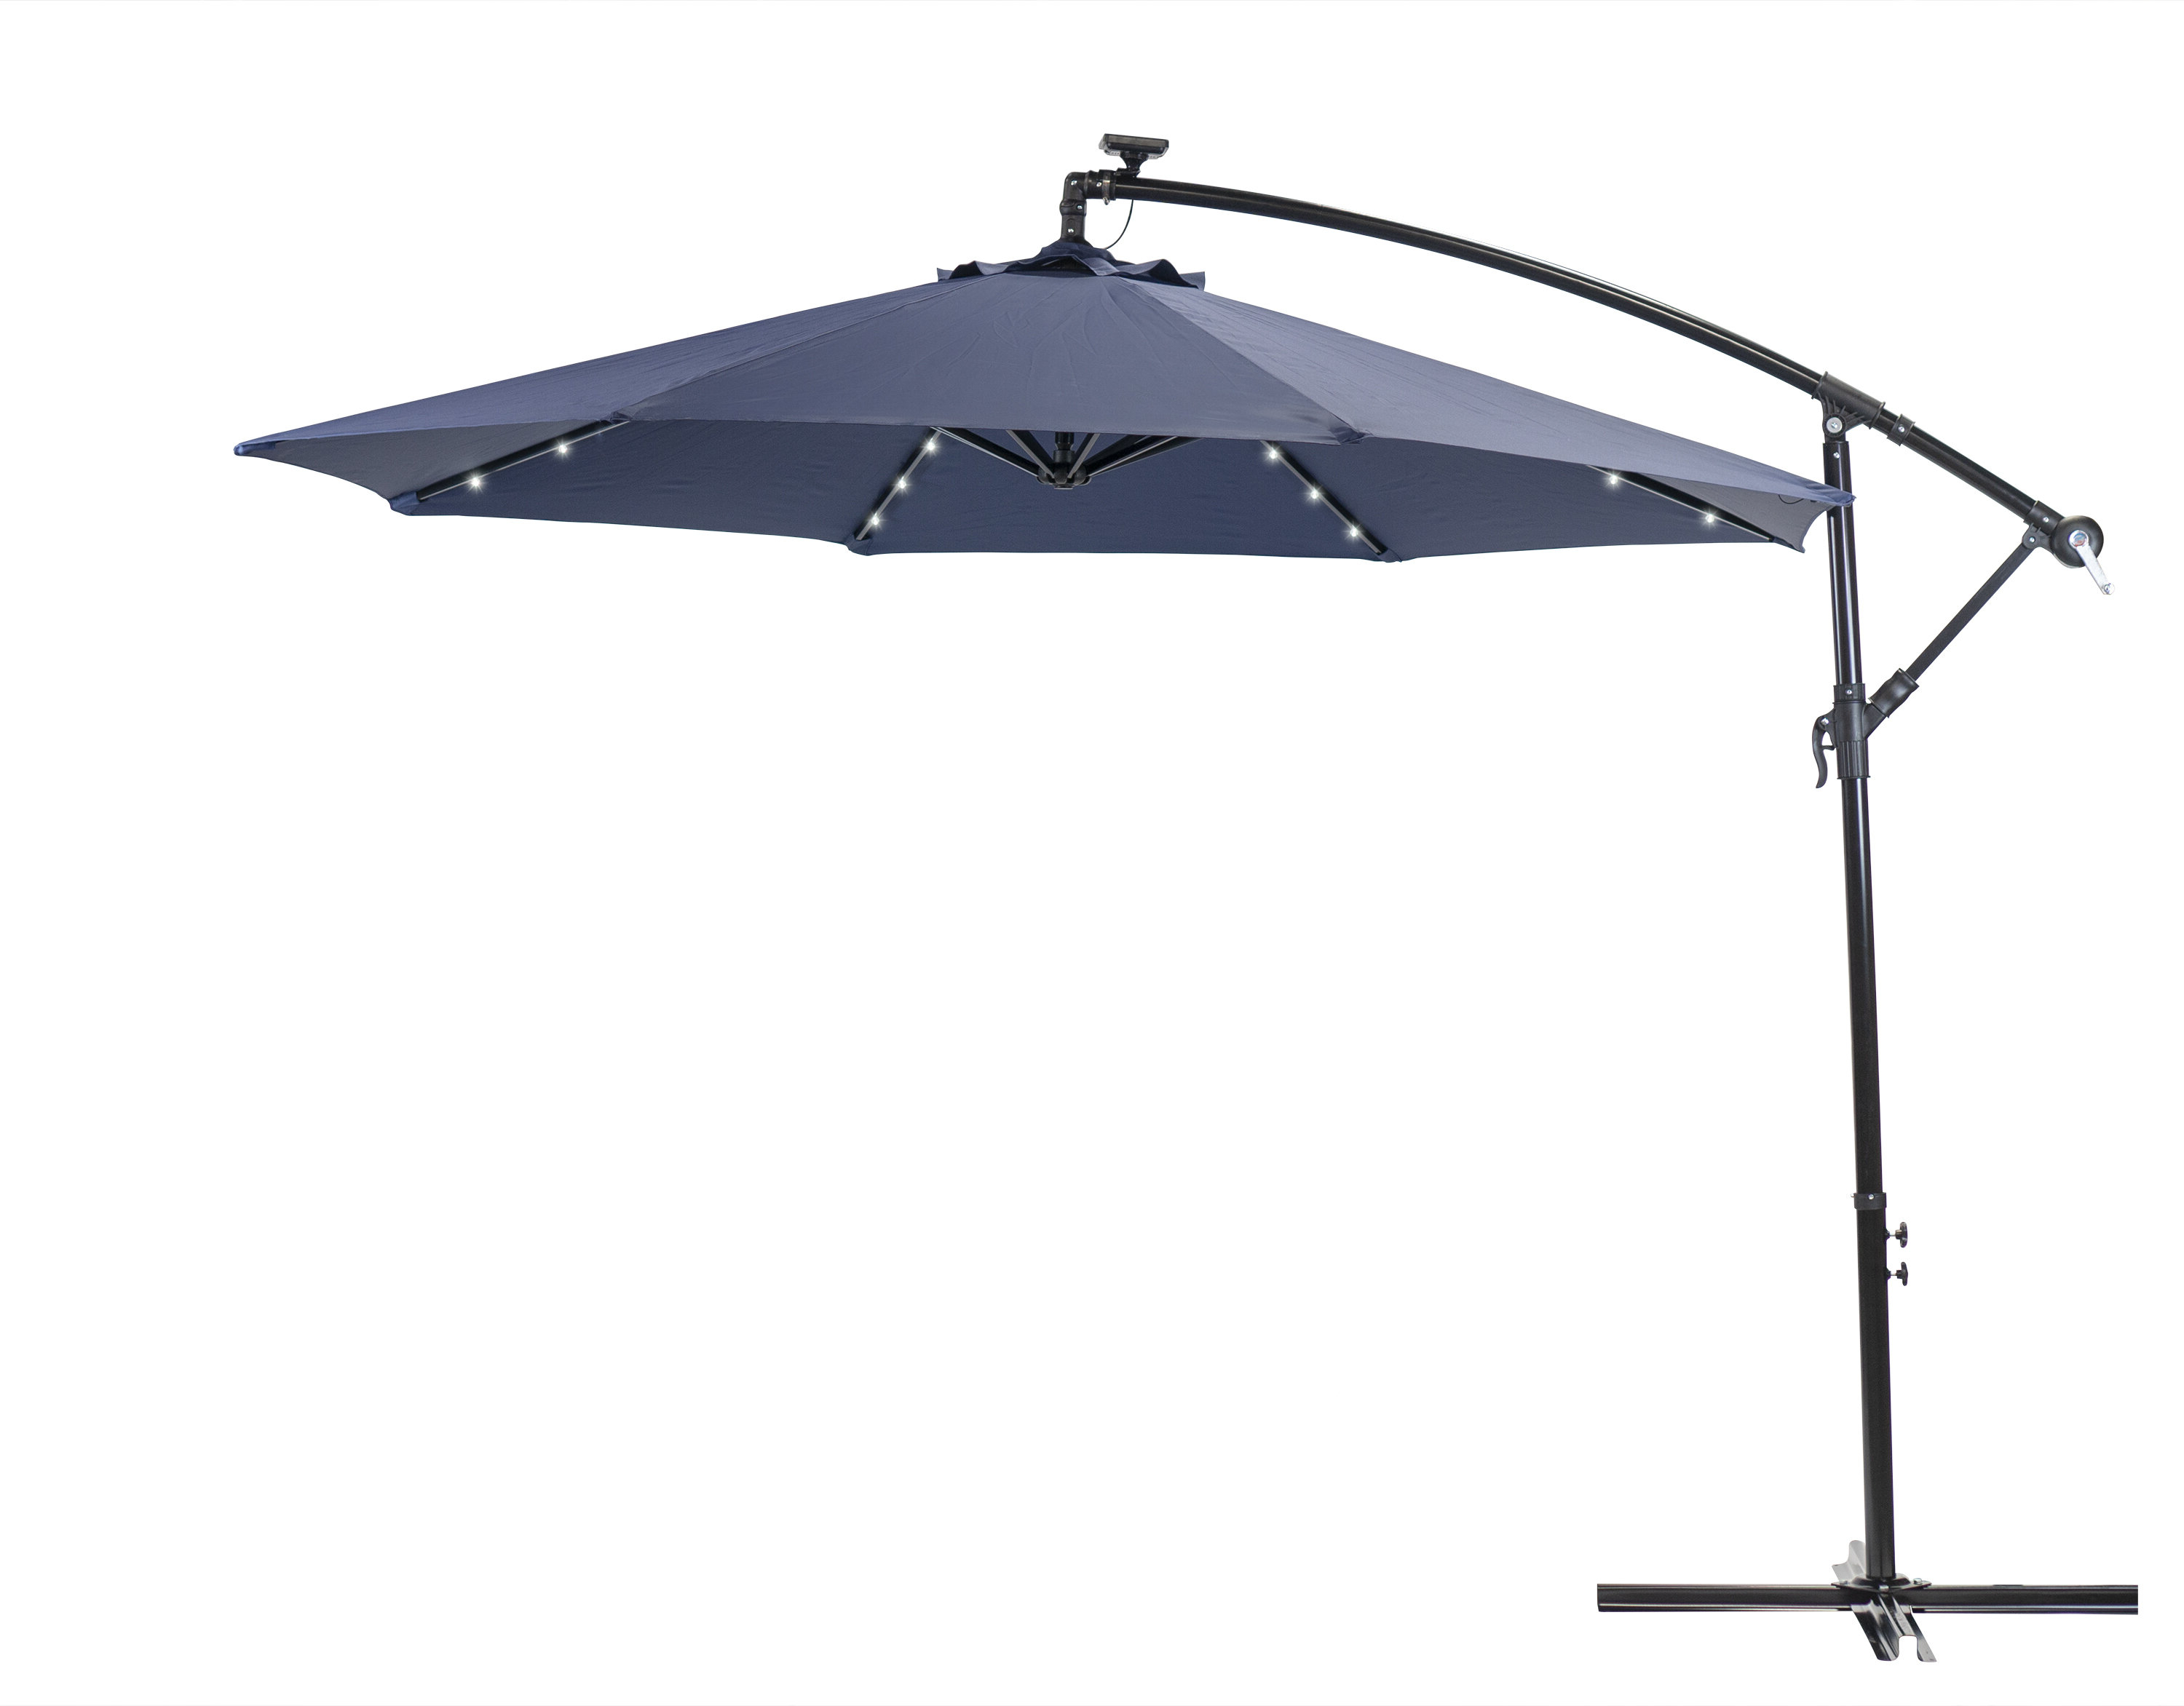 Featured Photo of Tallulah Sunshade Hanging Outdoor Cantilever Umbrellas